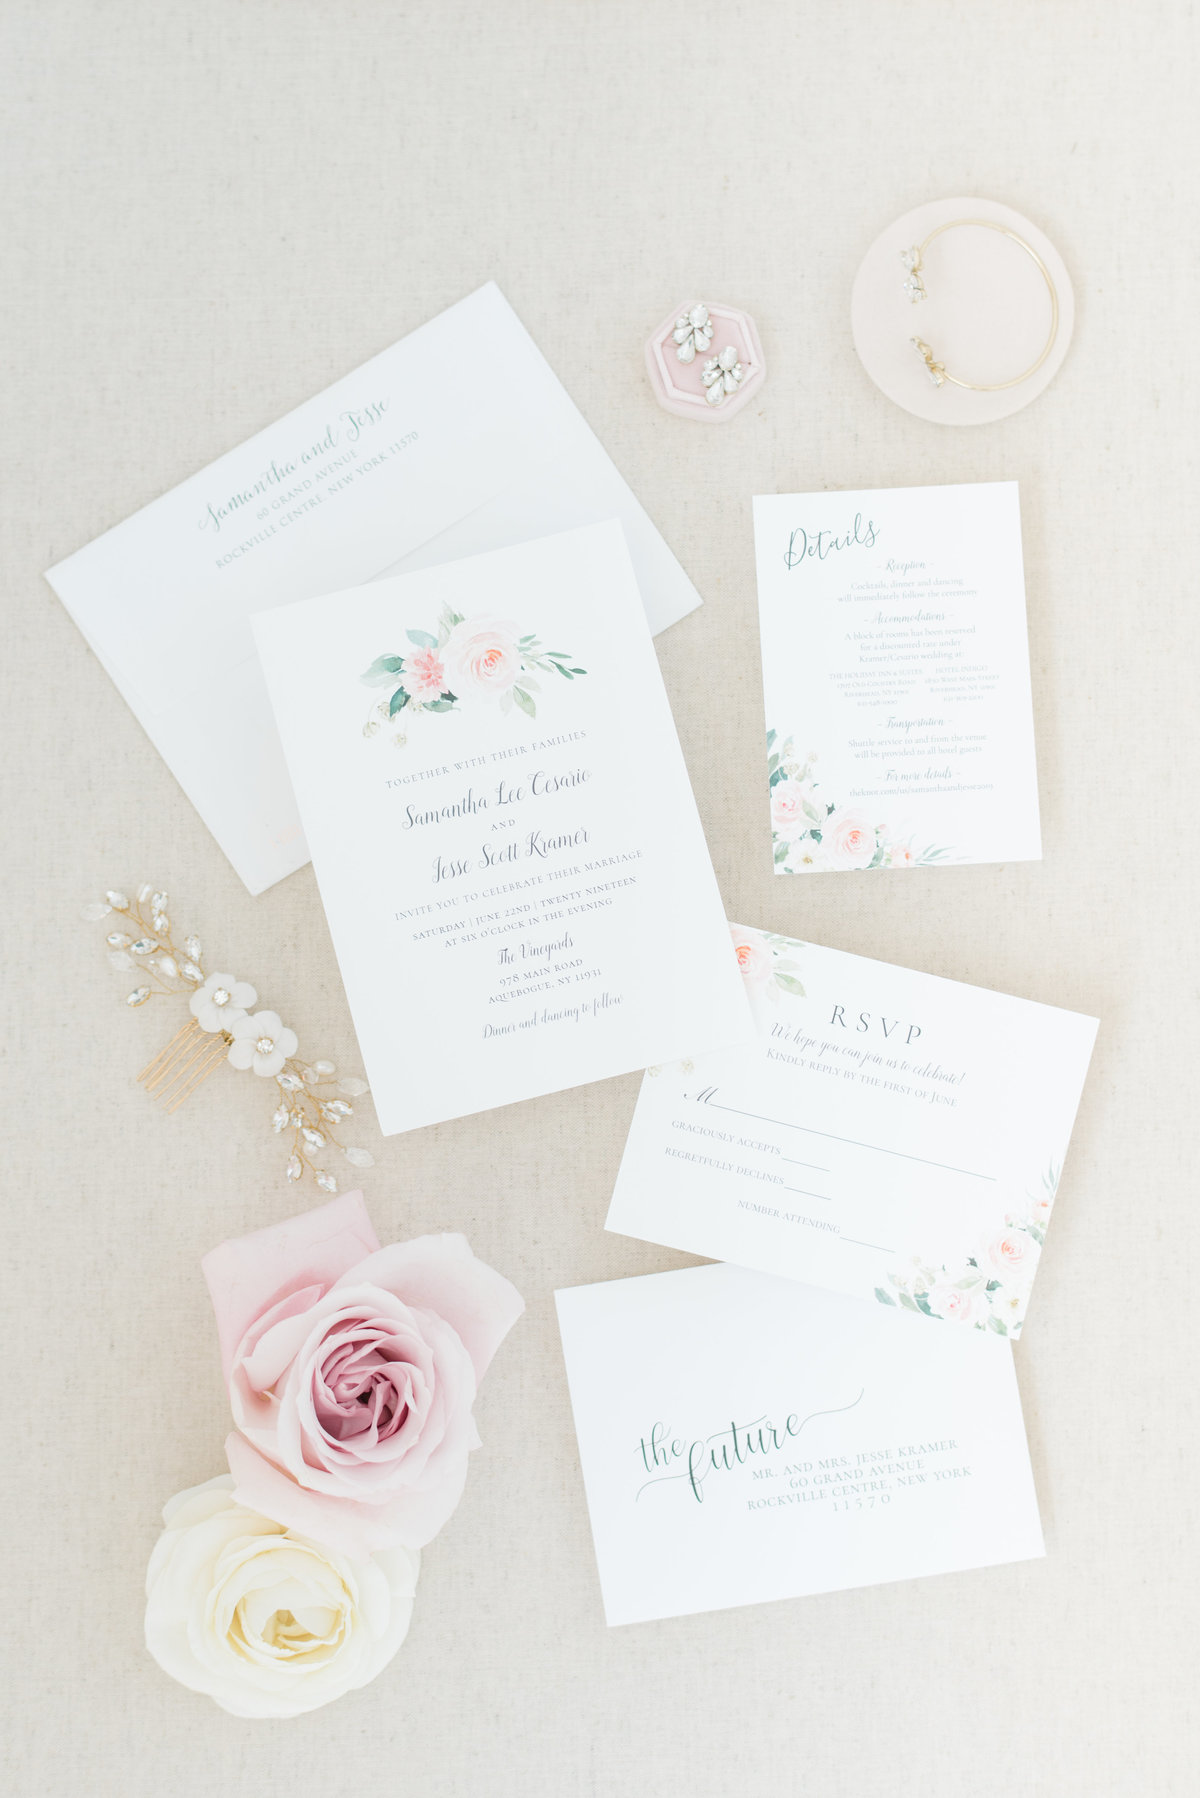 wedding-invitations-with-flowers-on-styling-board